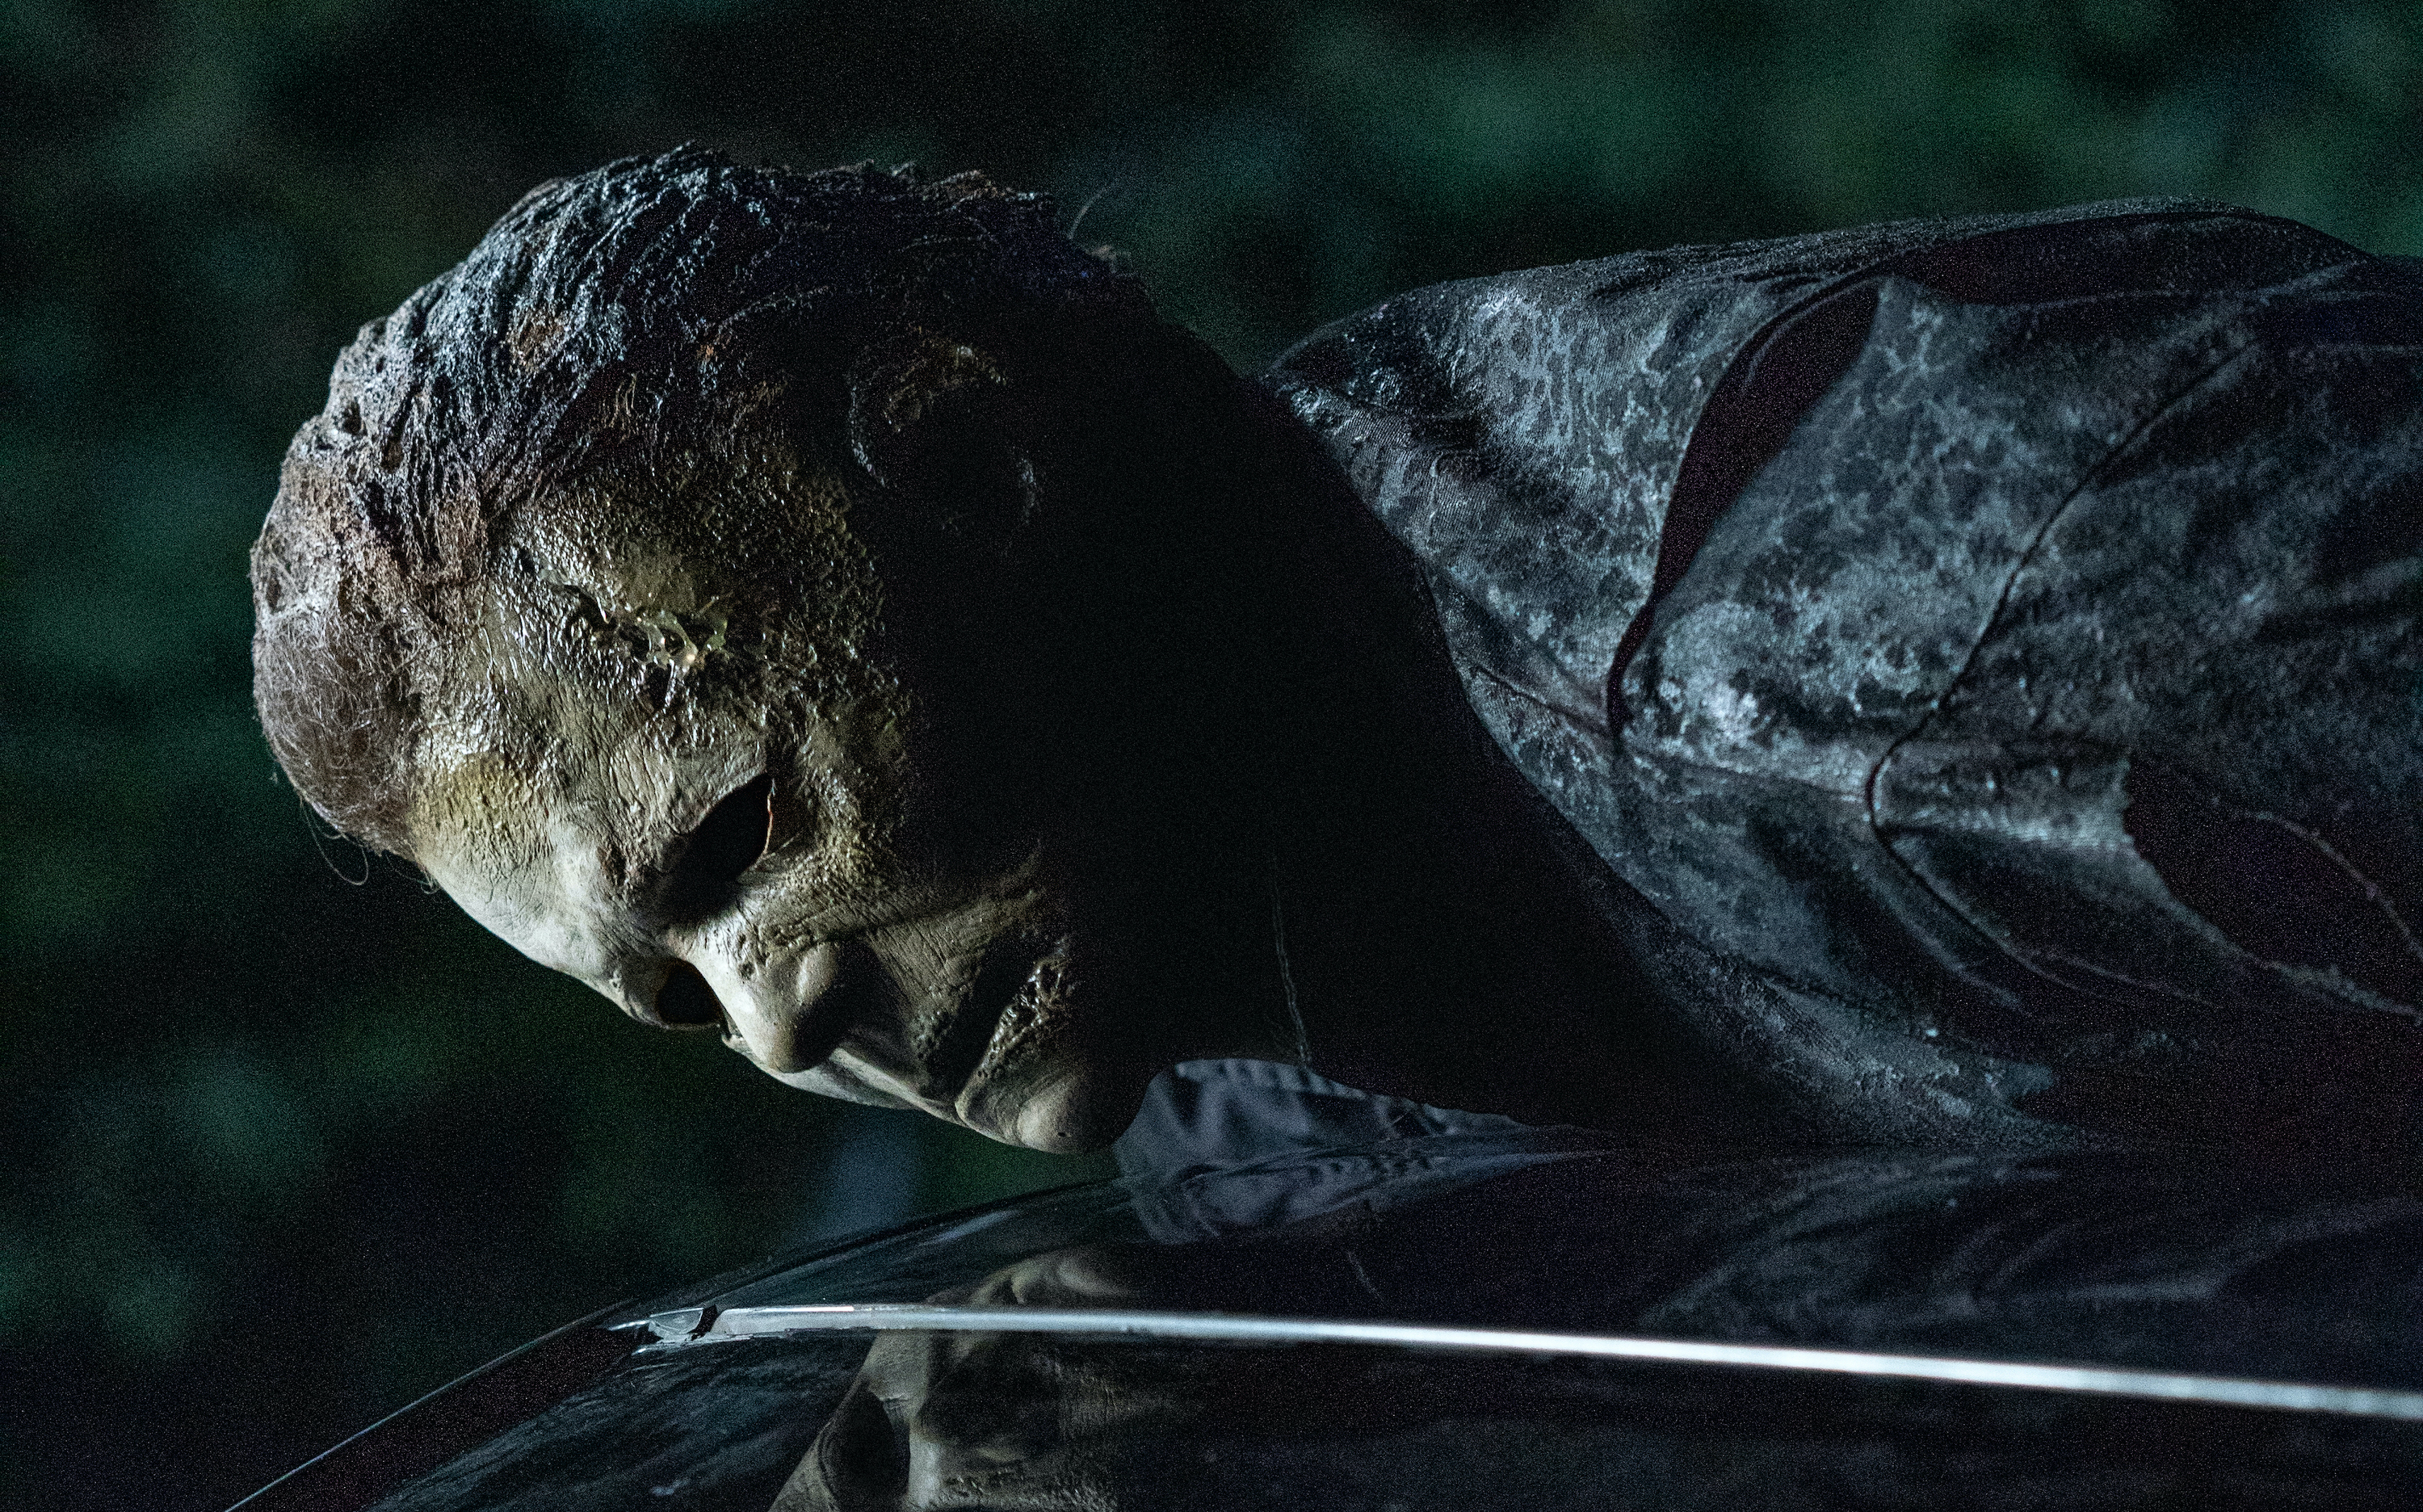 Masked killer Michael Myers lies on top of a car and looms over the victim inside in Halloween Kills